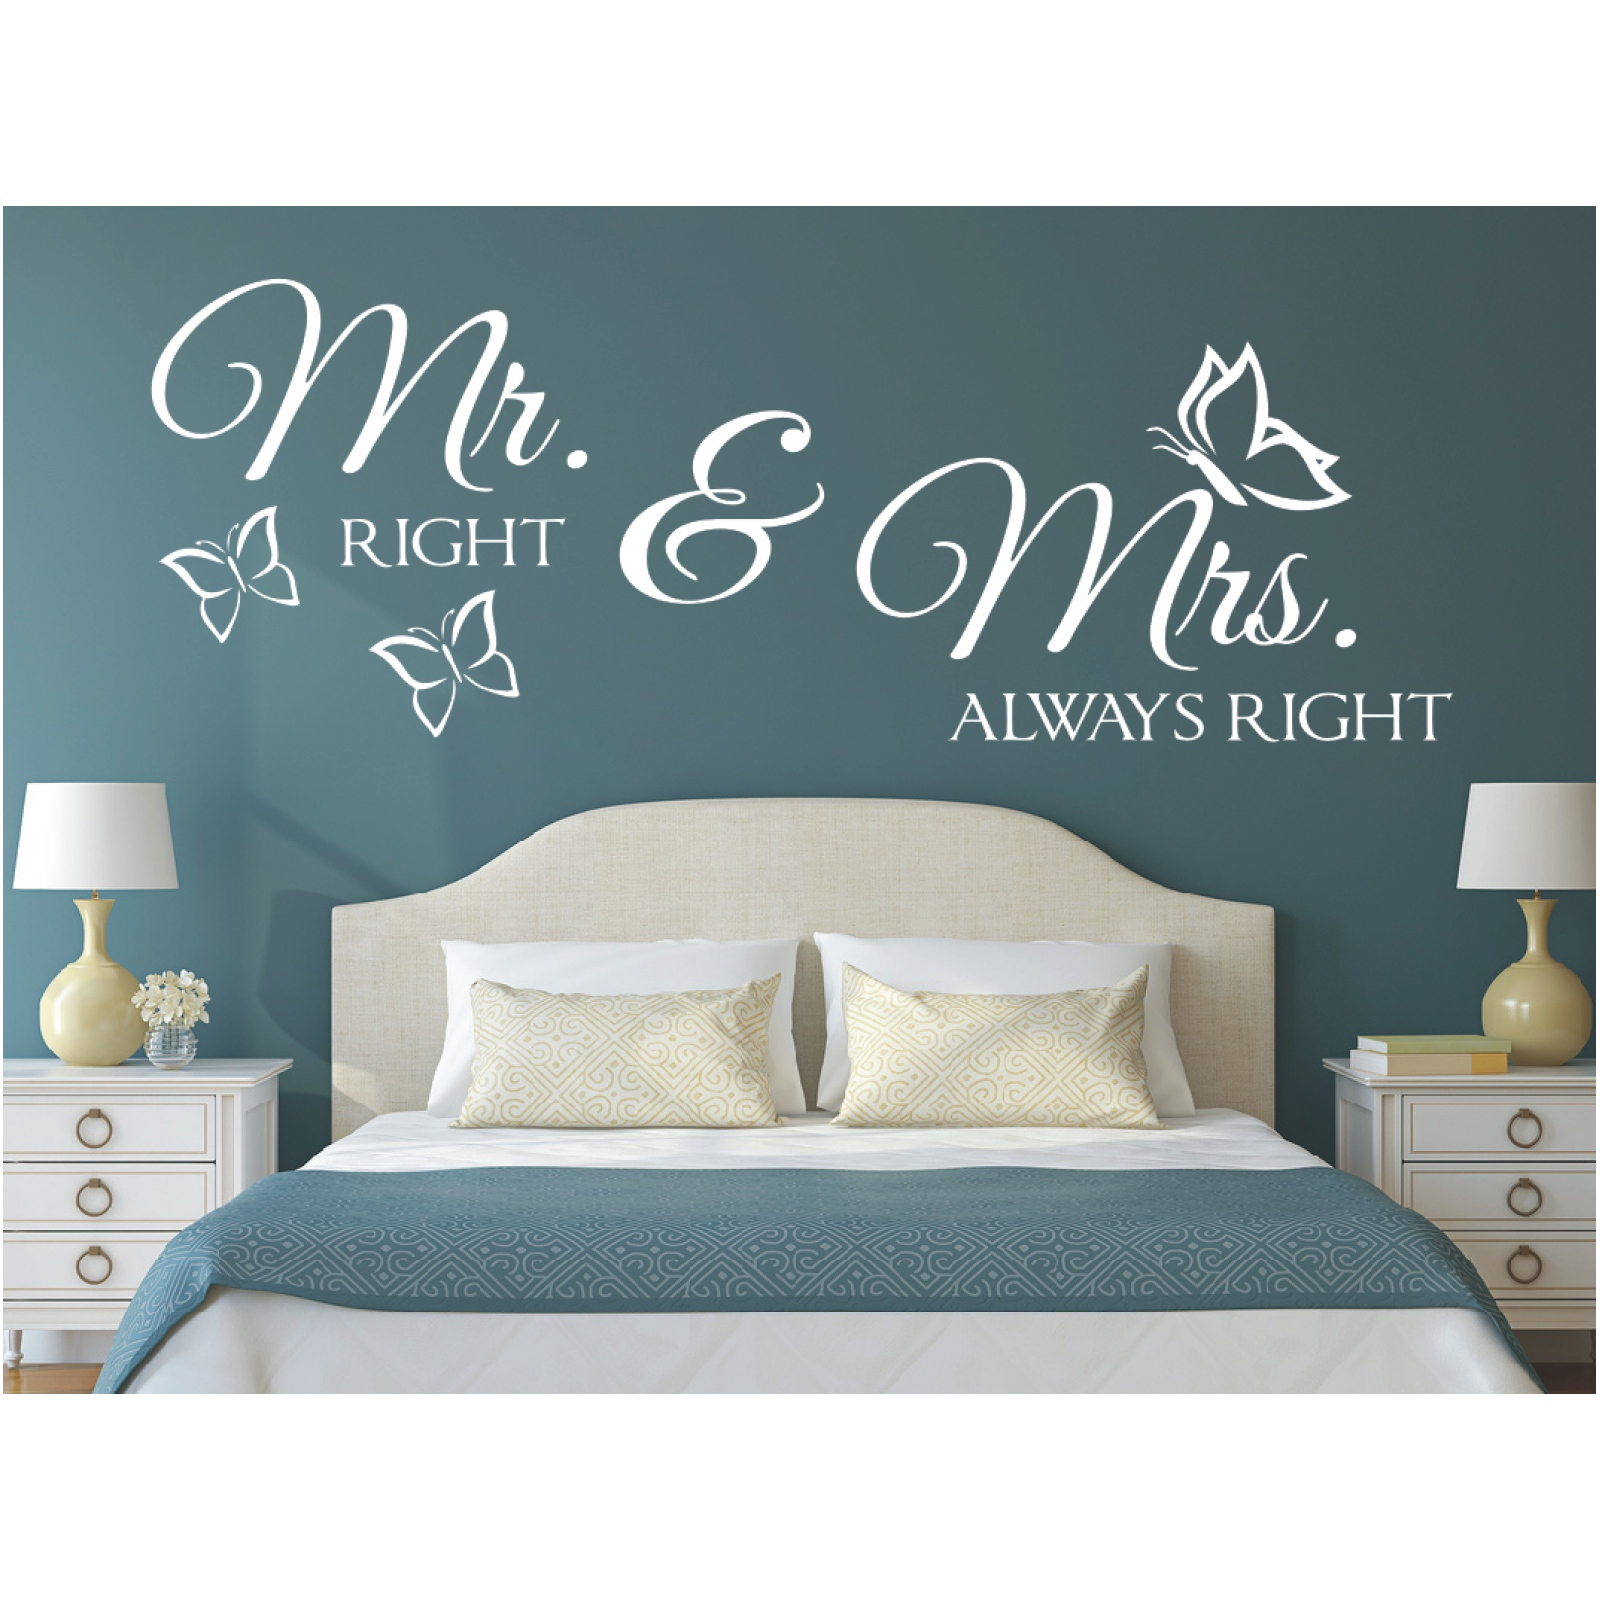 Wandtattoo Küchenregeln Wandtattoo Spruch Mr. Right Mrs. Always Right Hochzeit Wandaufkleber Sticker | Ebay